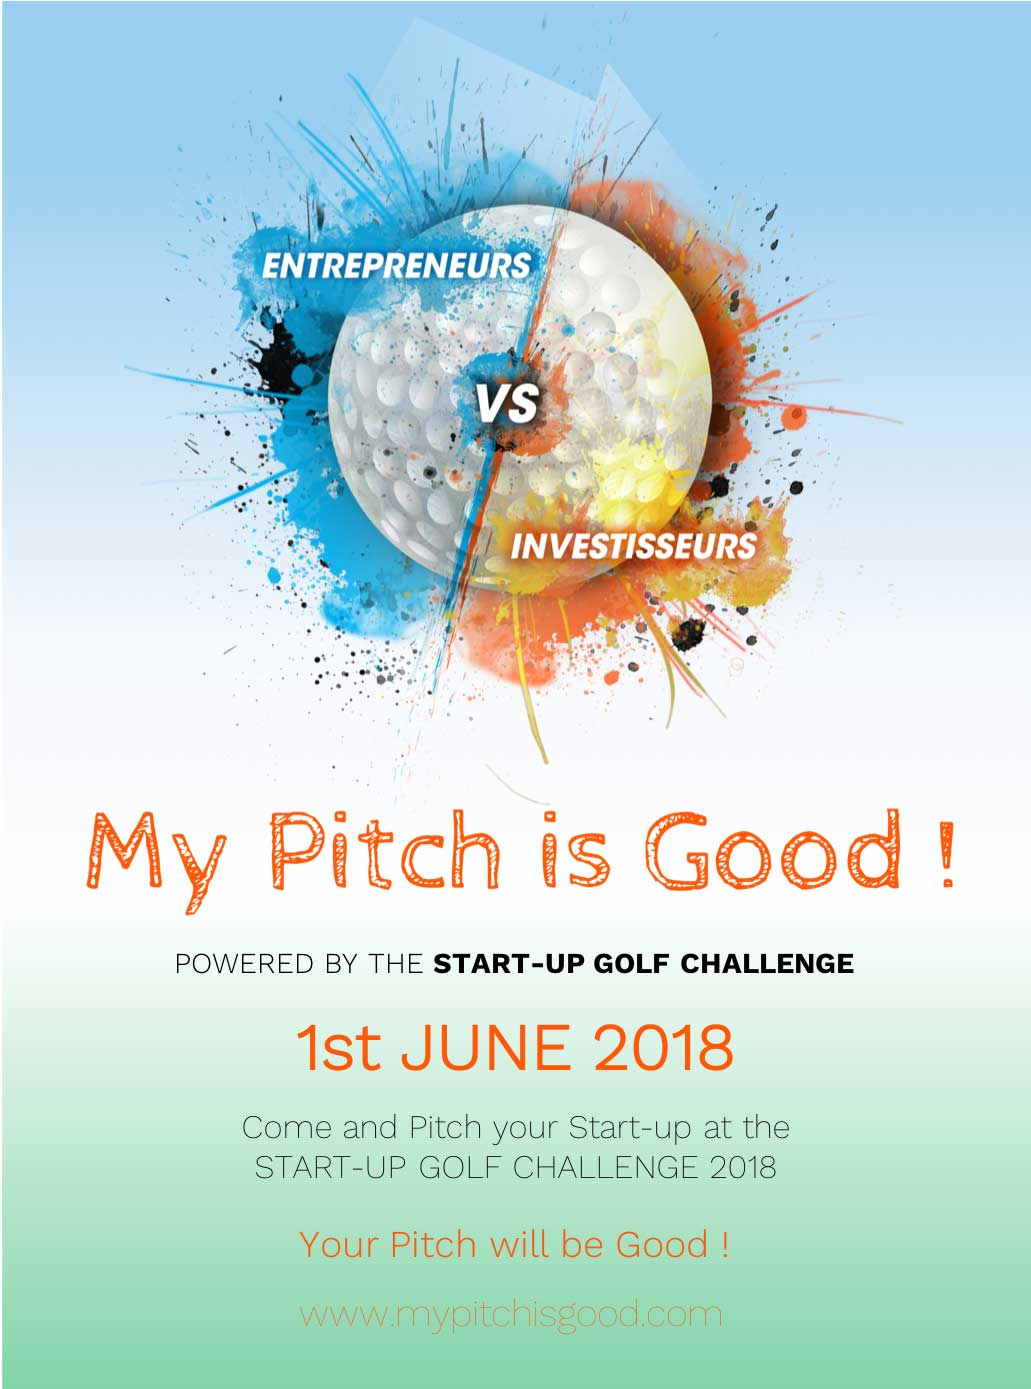 My Pitch is Good Powered by the START-UP GOLF CHALLENGE